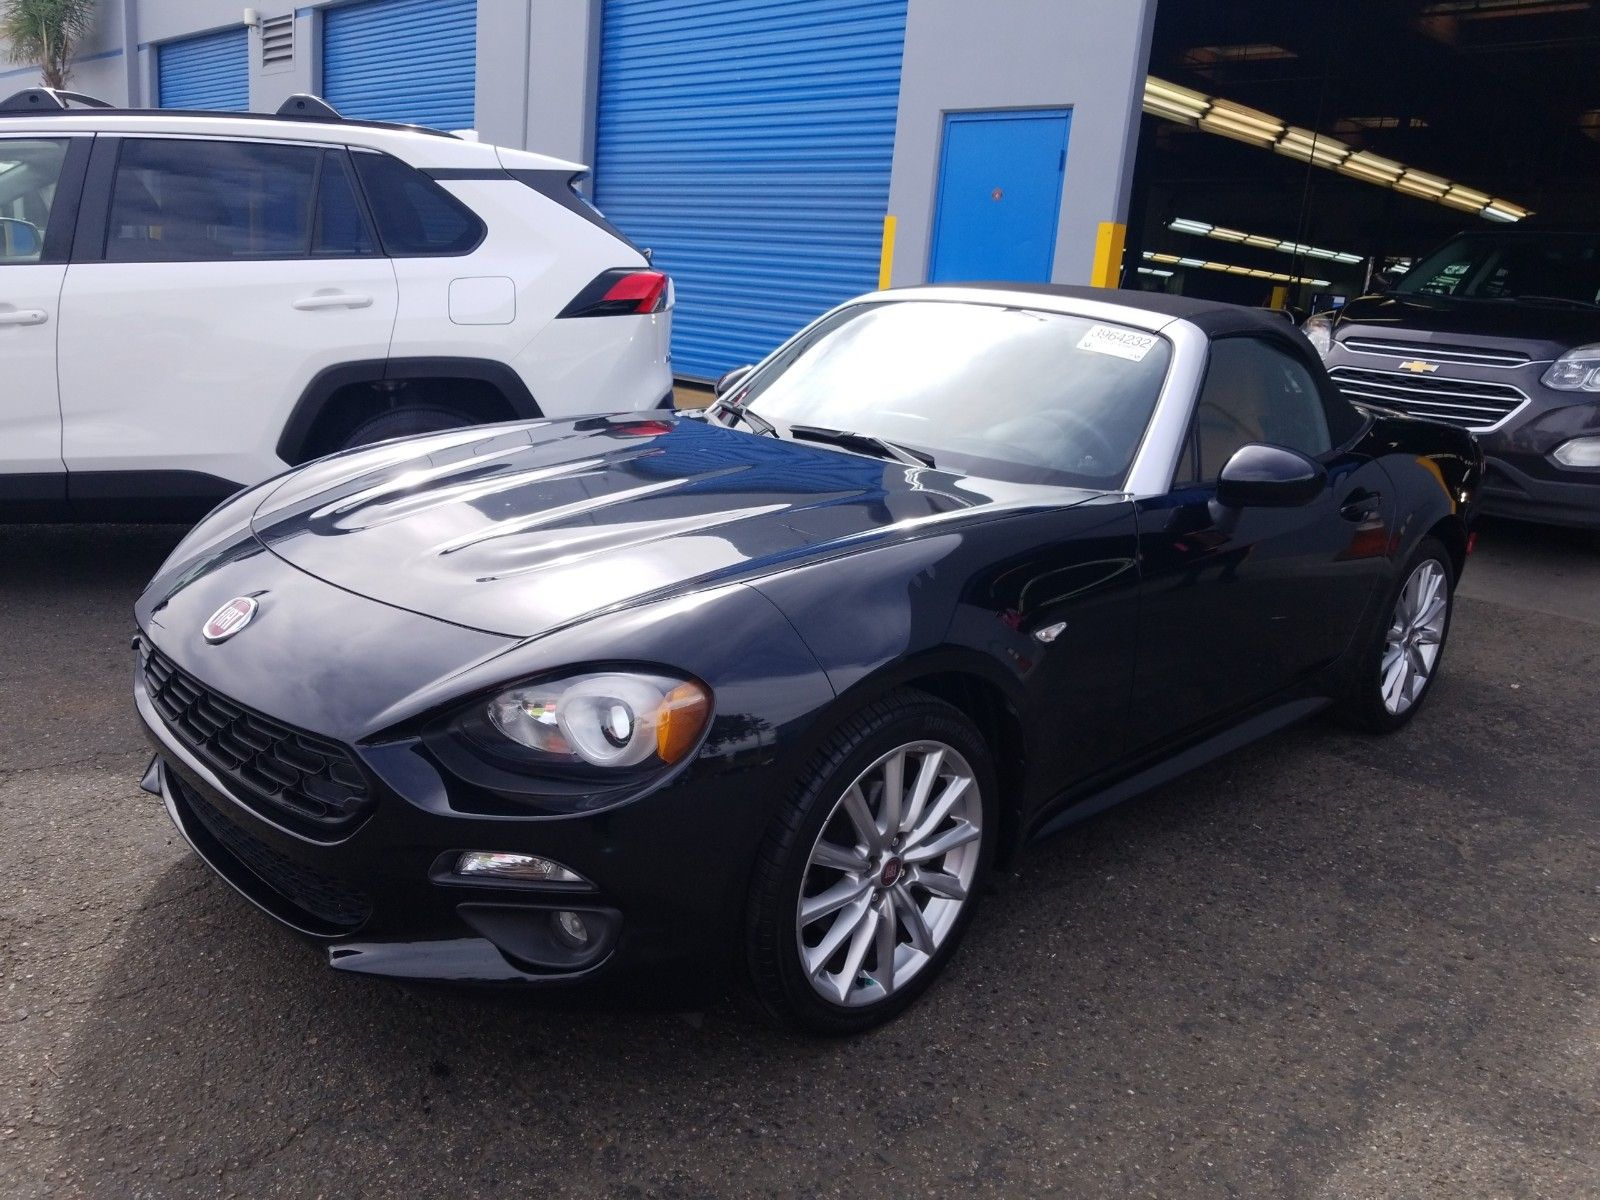 2017 Fiat 124 spider 1.4. Lot 99914076914 Vin JC1NFAEK5H0104660